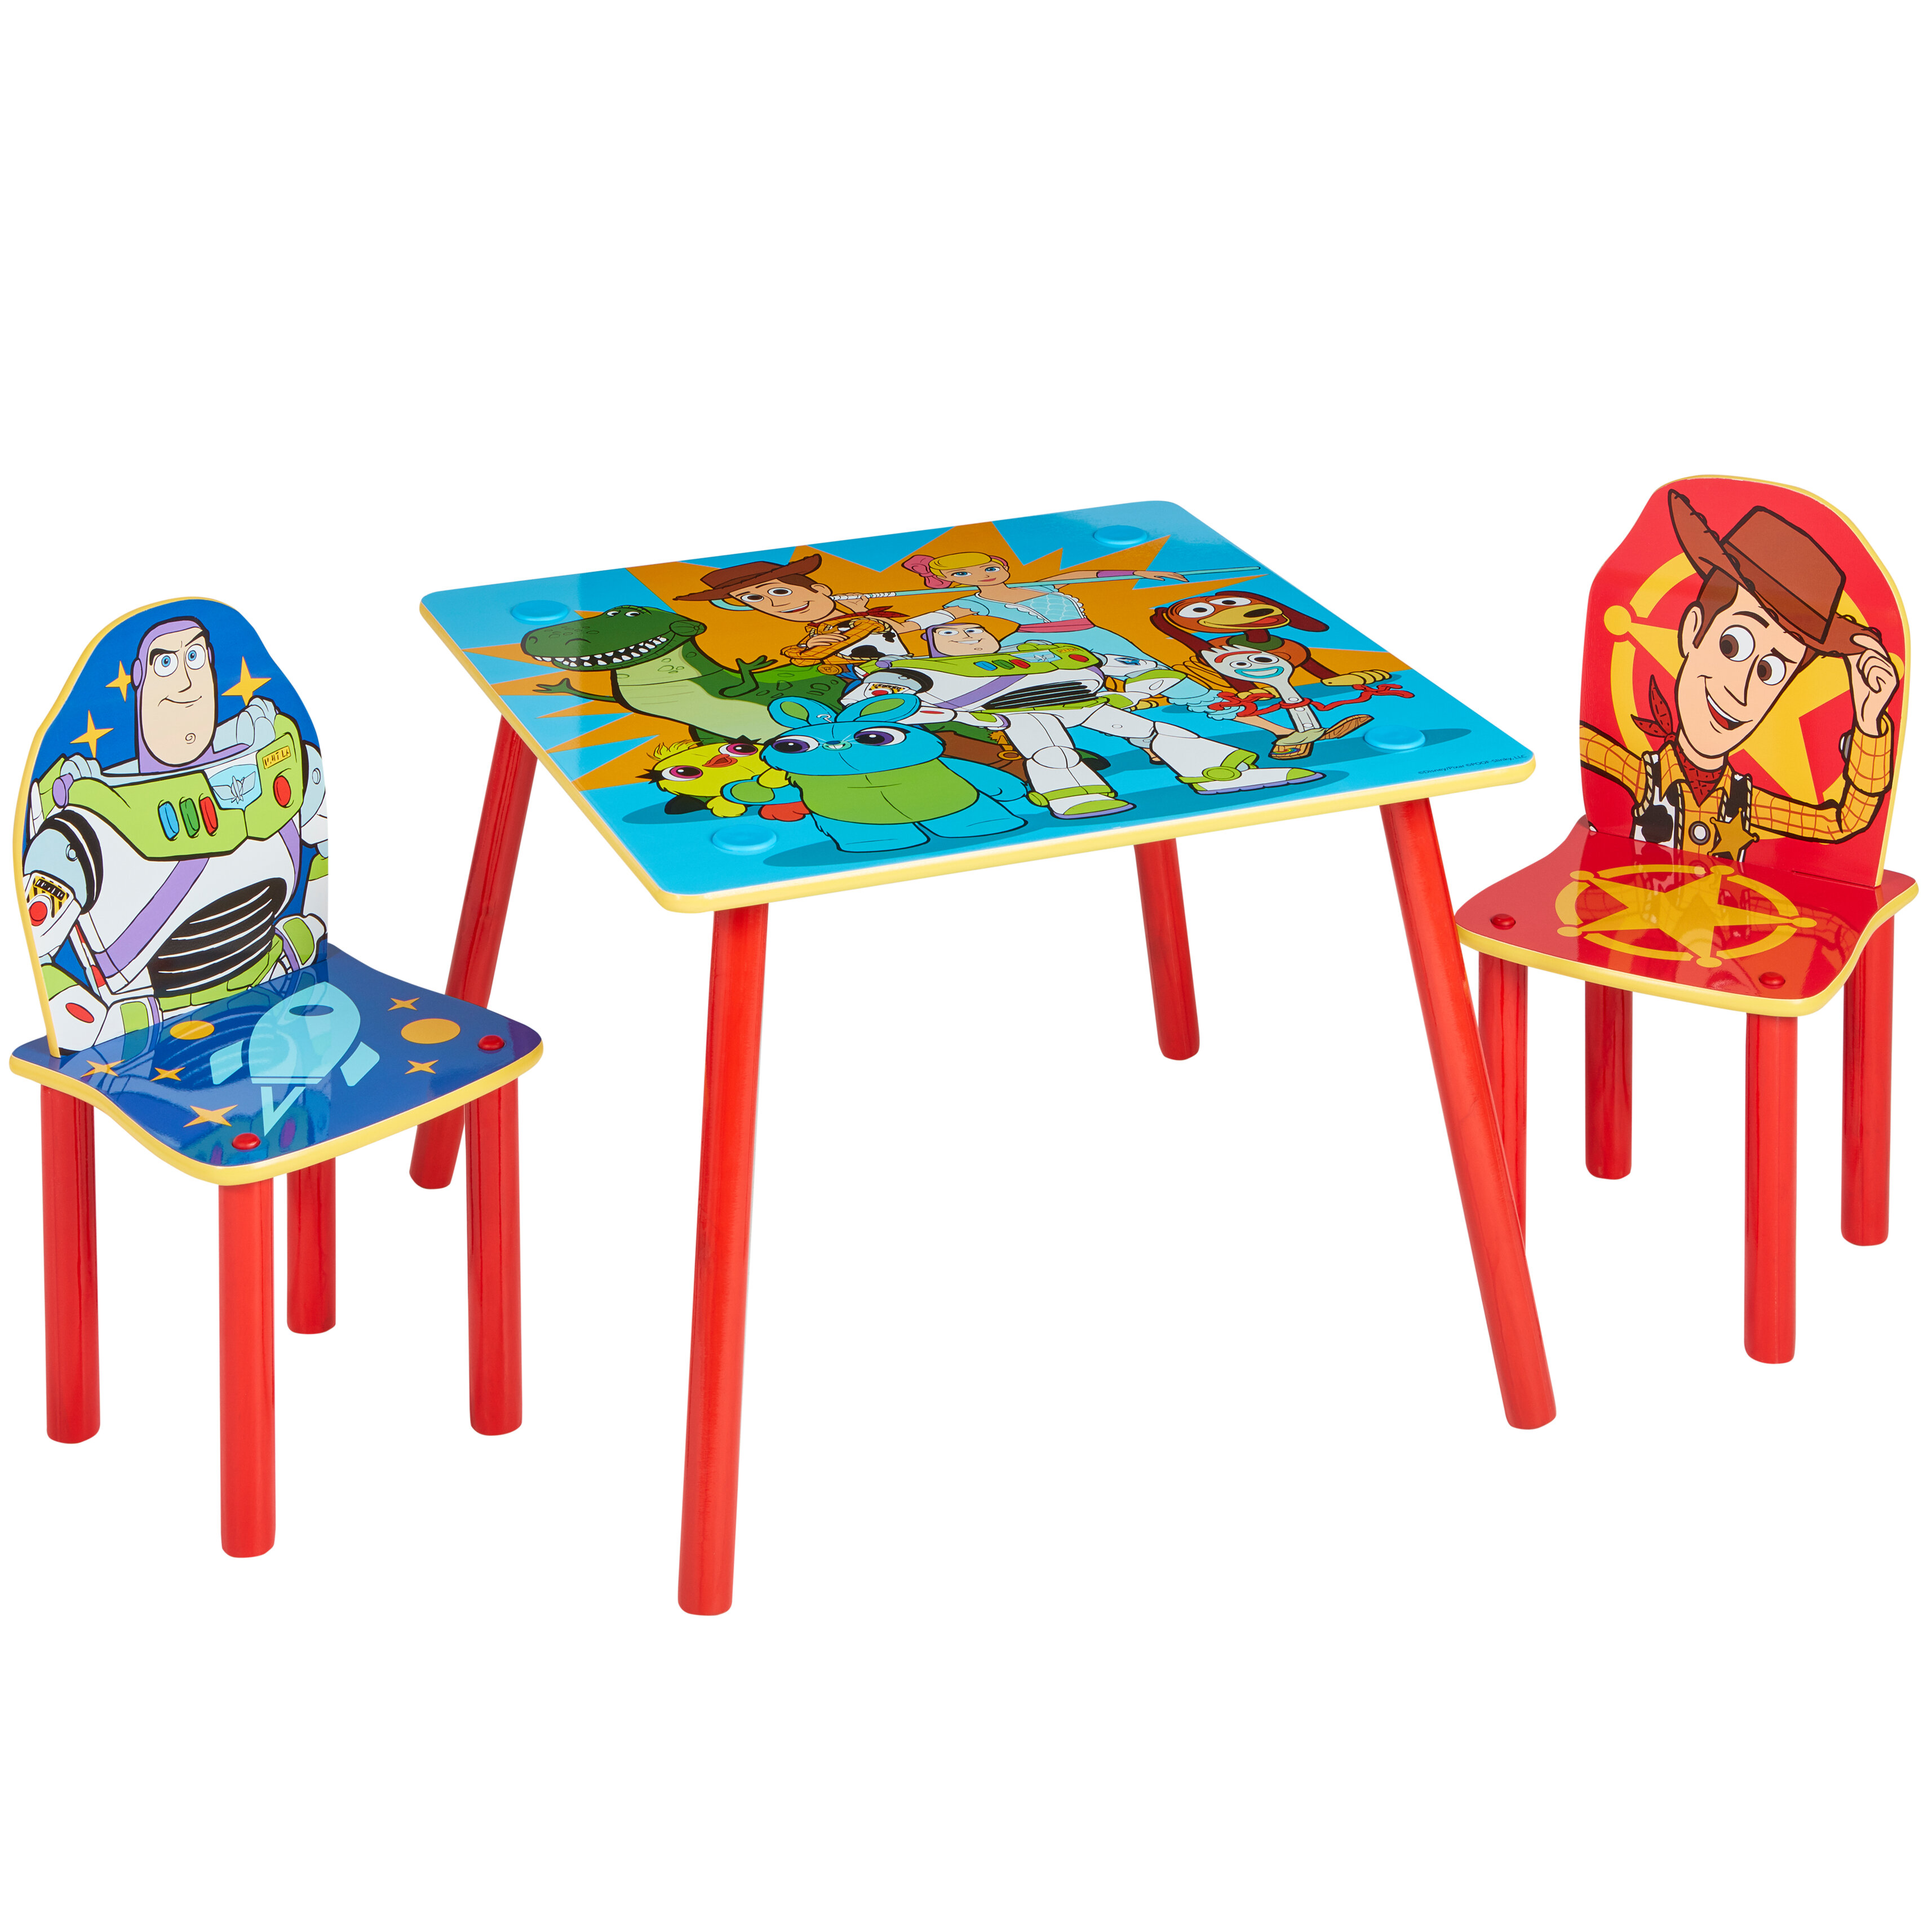 - Disney Pixar Disney Toy Story Children's 3 Piece Table And Chair